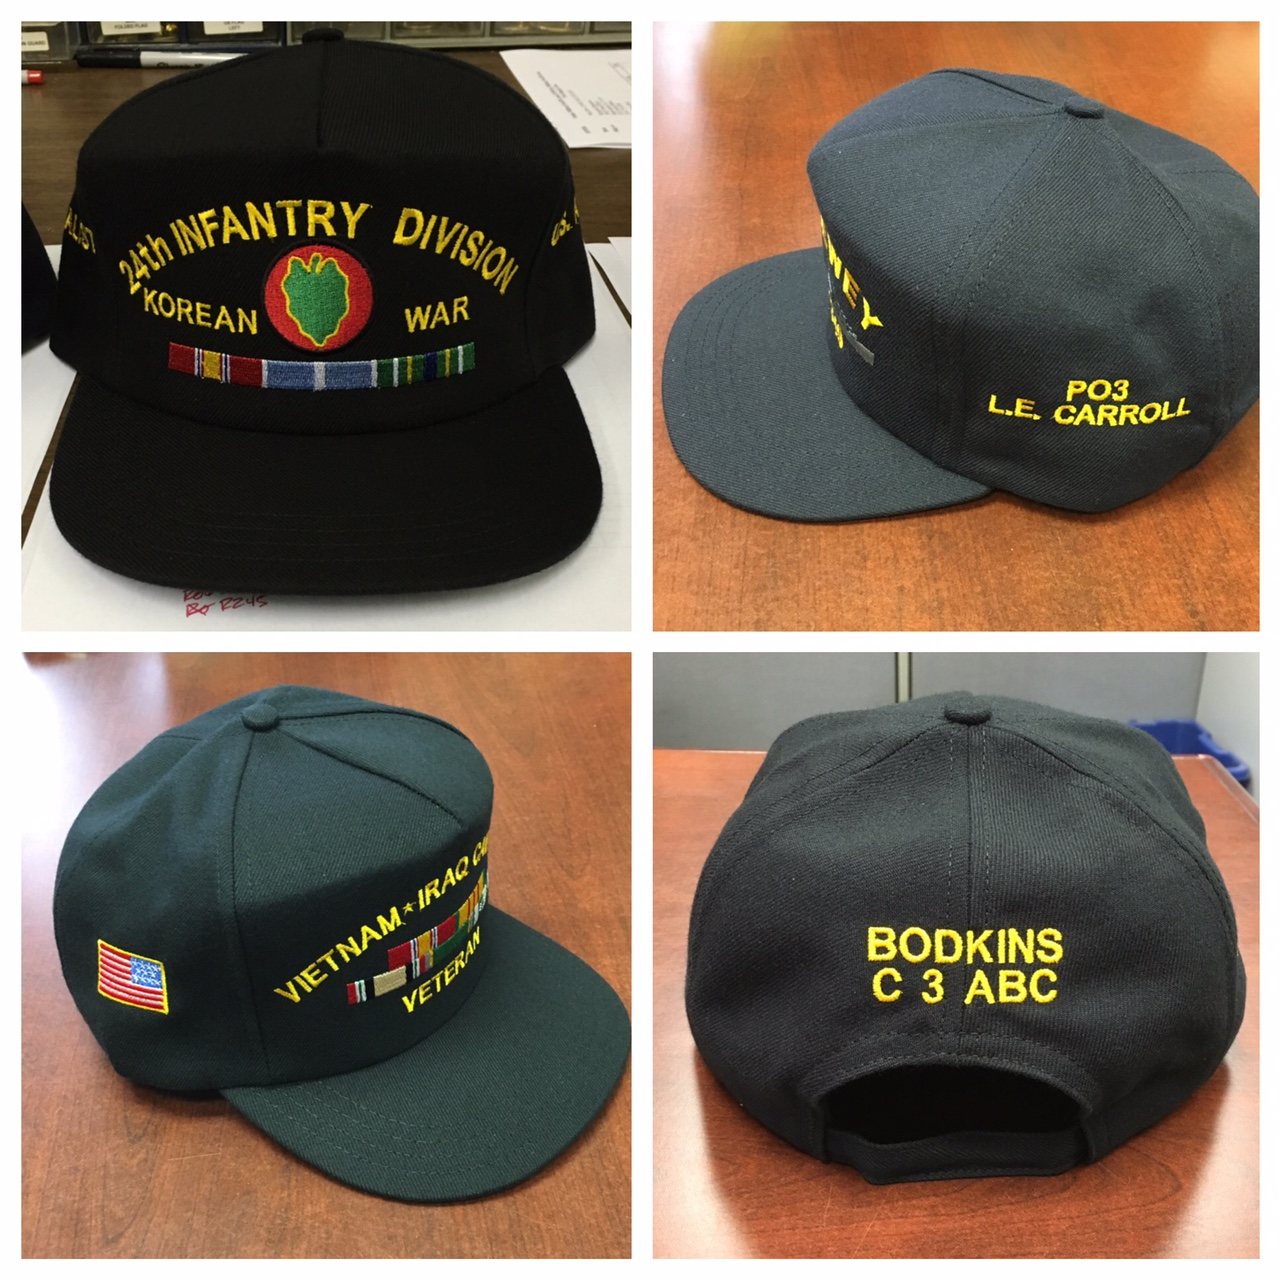 ... custom embroidered army air force navy usmc hat with military ribbons 4bcfcf4984b